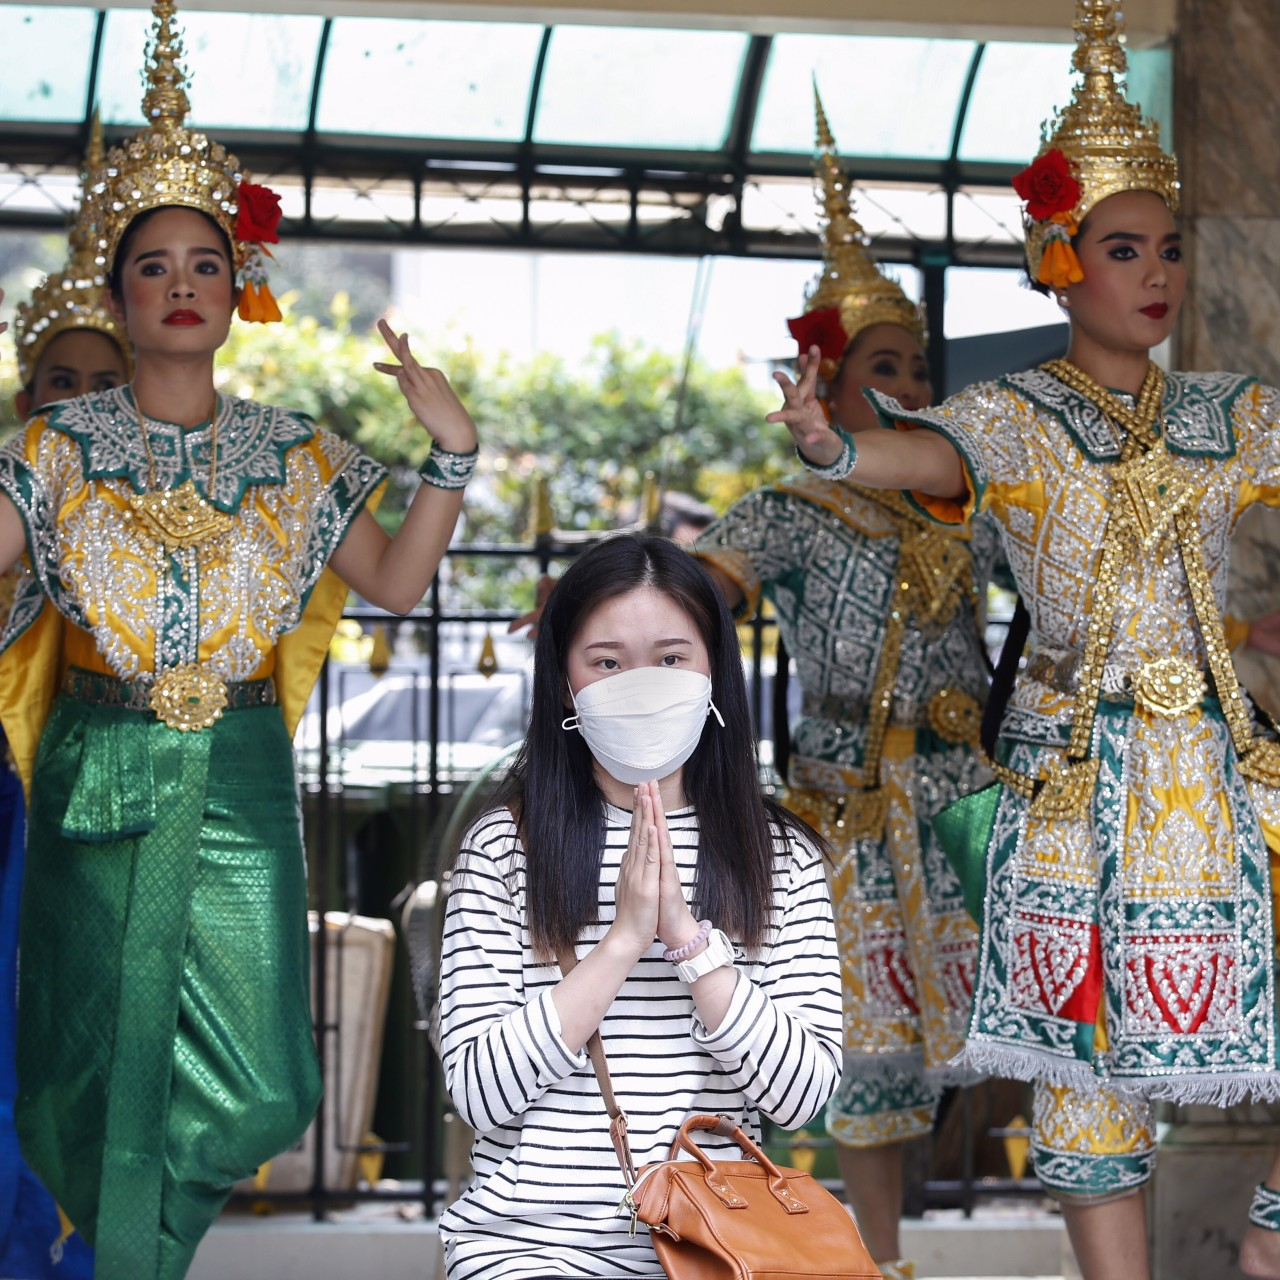 Malaysia Lures Chinese Tourists To Sabah State With Sun Sand And Selfies South China Morning Post